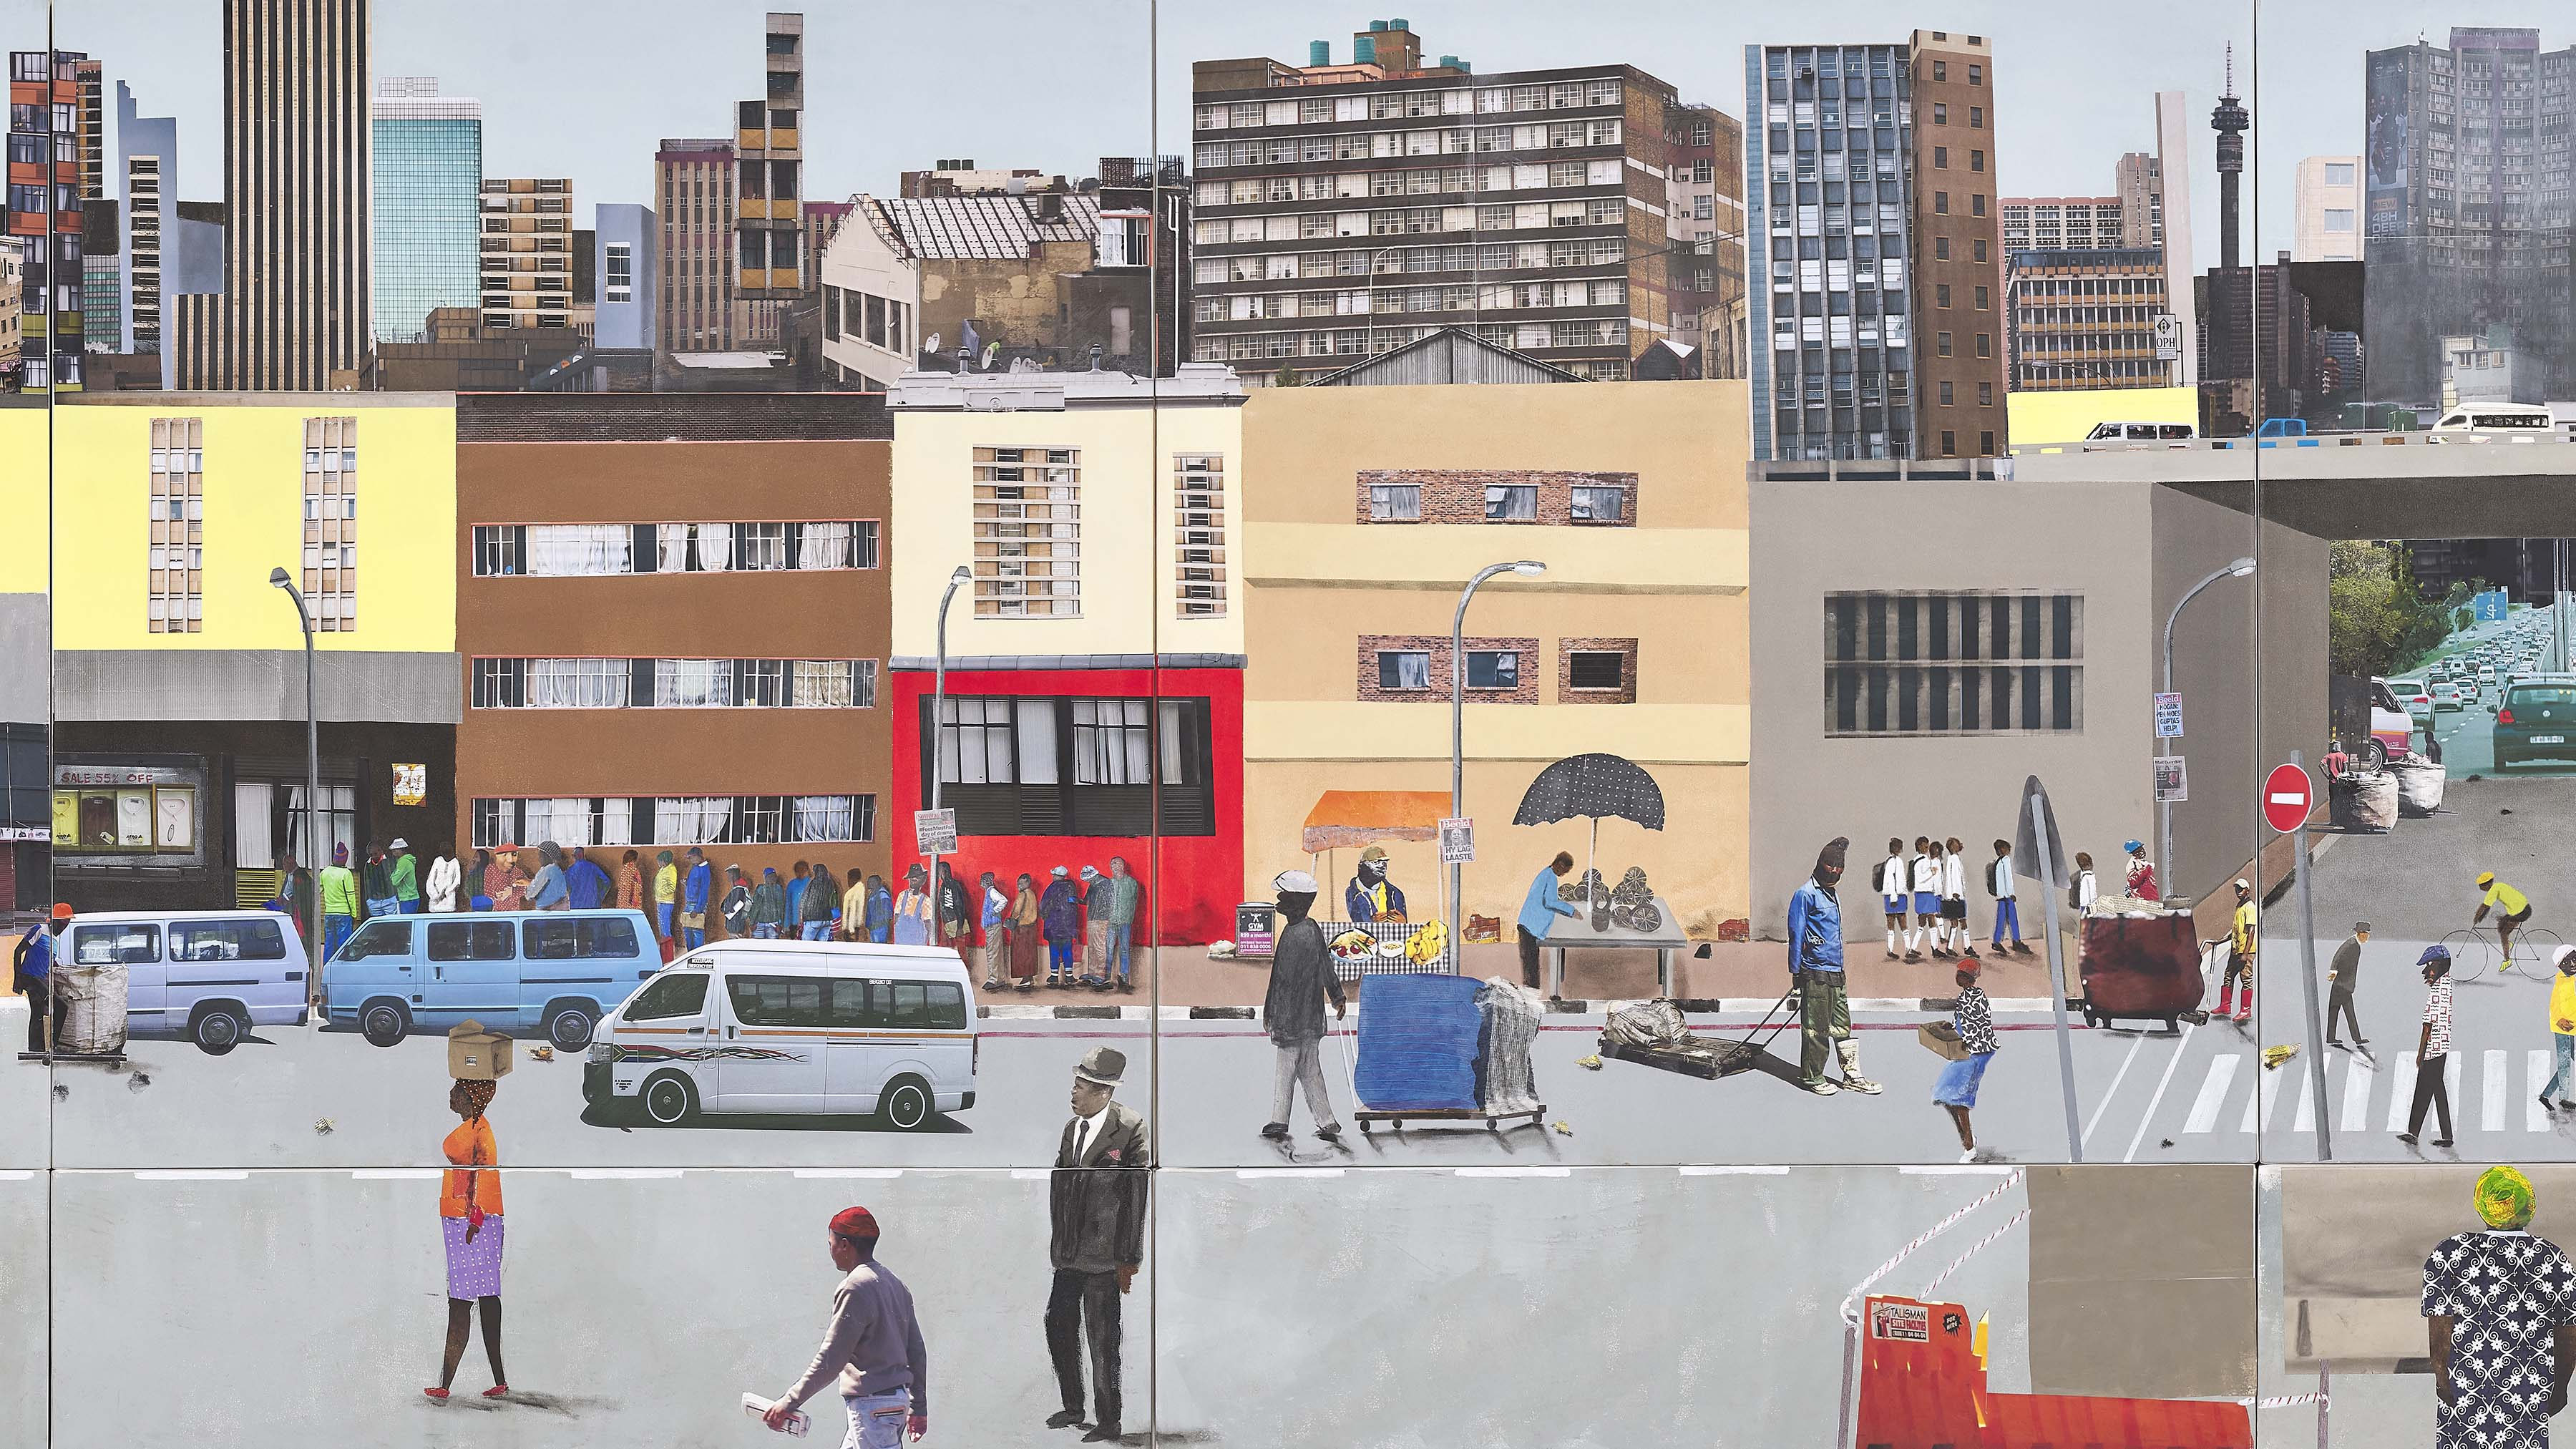 2019: I love Jozi a collage by Sam Nhlengethwa is one of the works on show in his latest exhibition, Joburg Selected, which opened at the Goodman Gallery in Johannesburg. (Artwork by Sam Nhlengethwa)